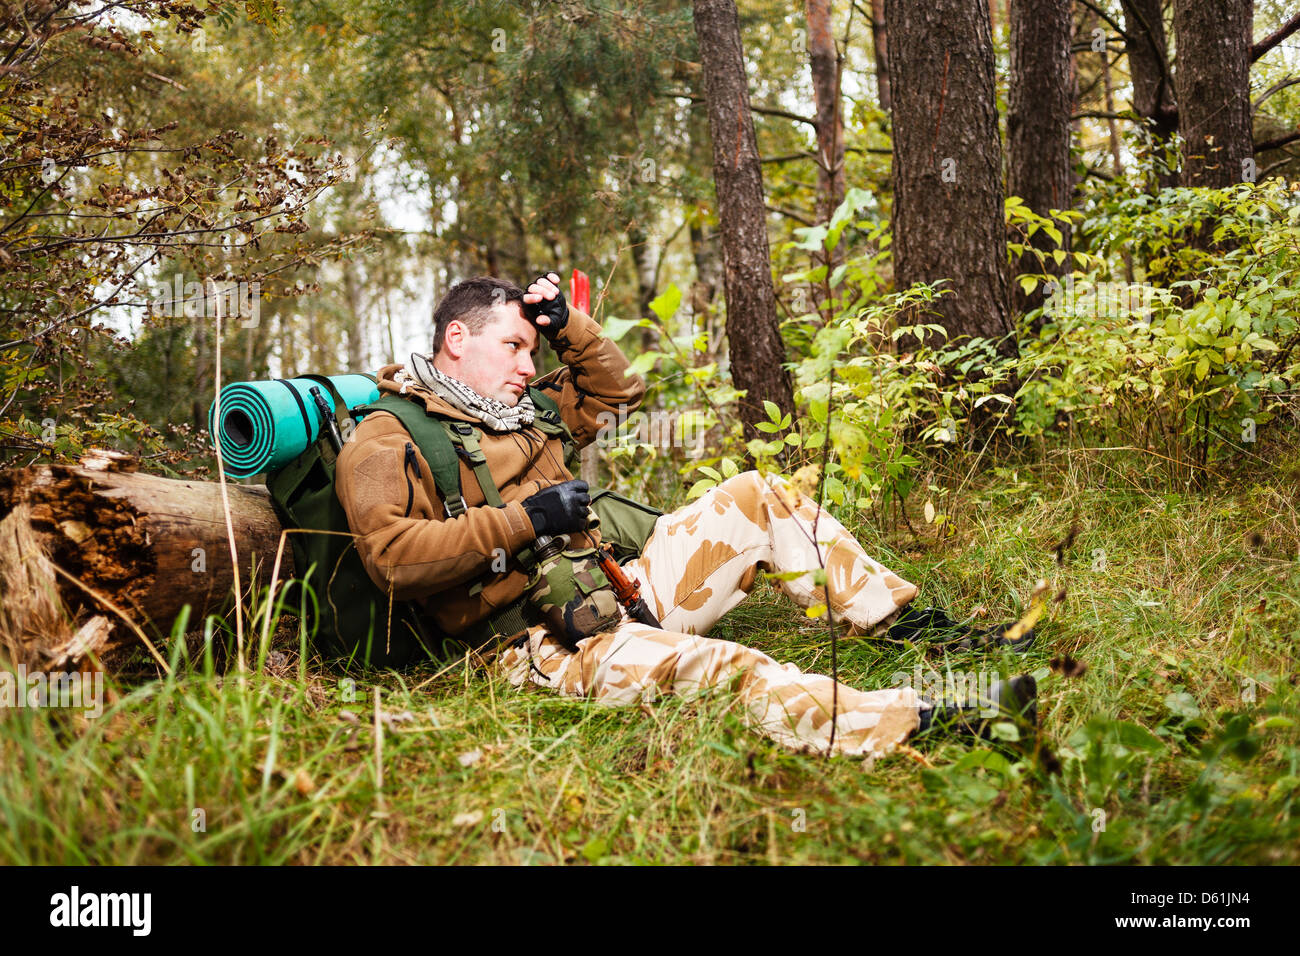 Soldier relaxing in a forest. - Stock Image